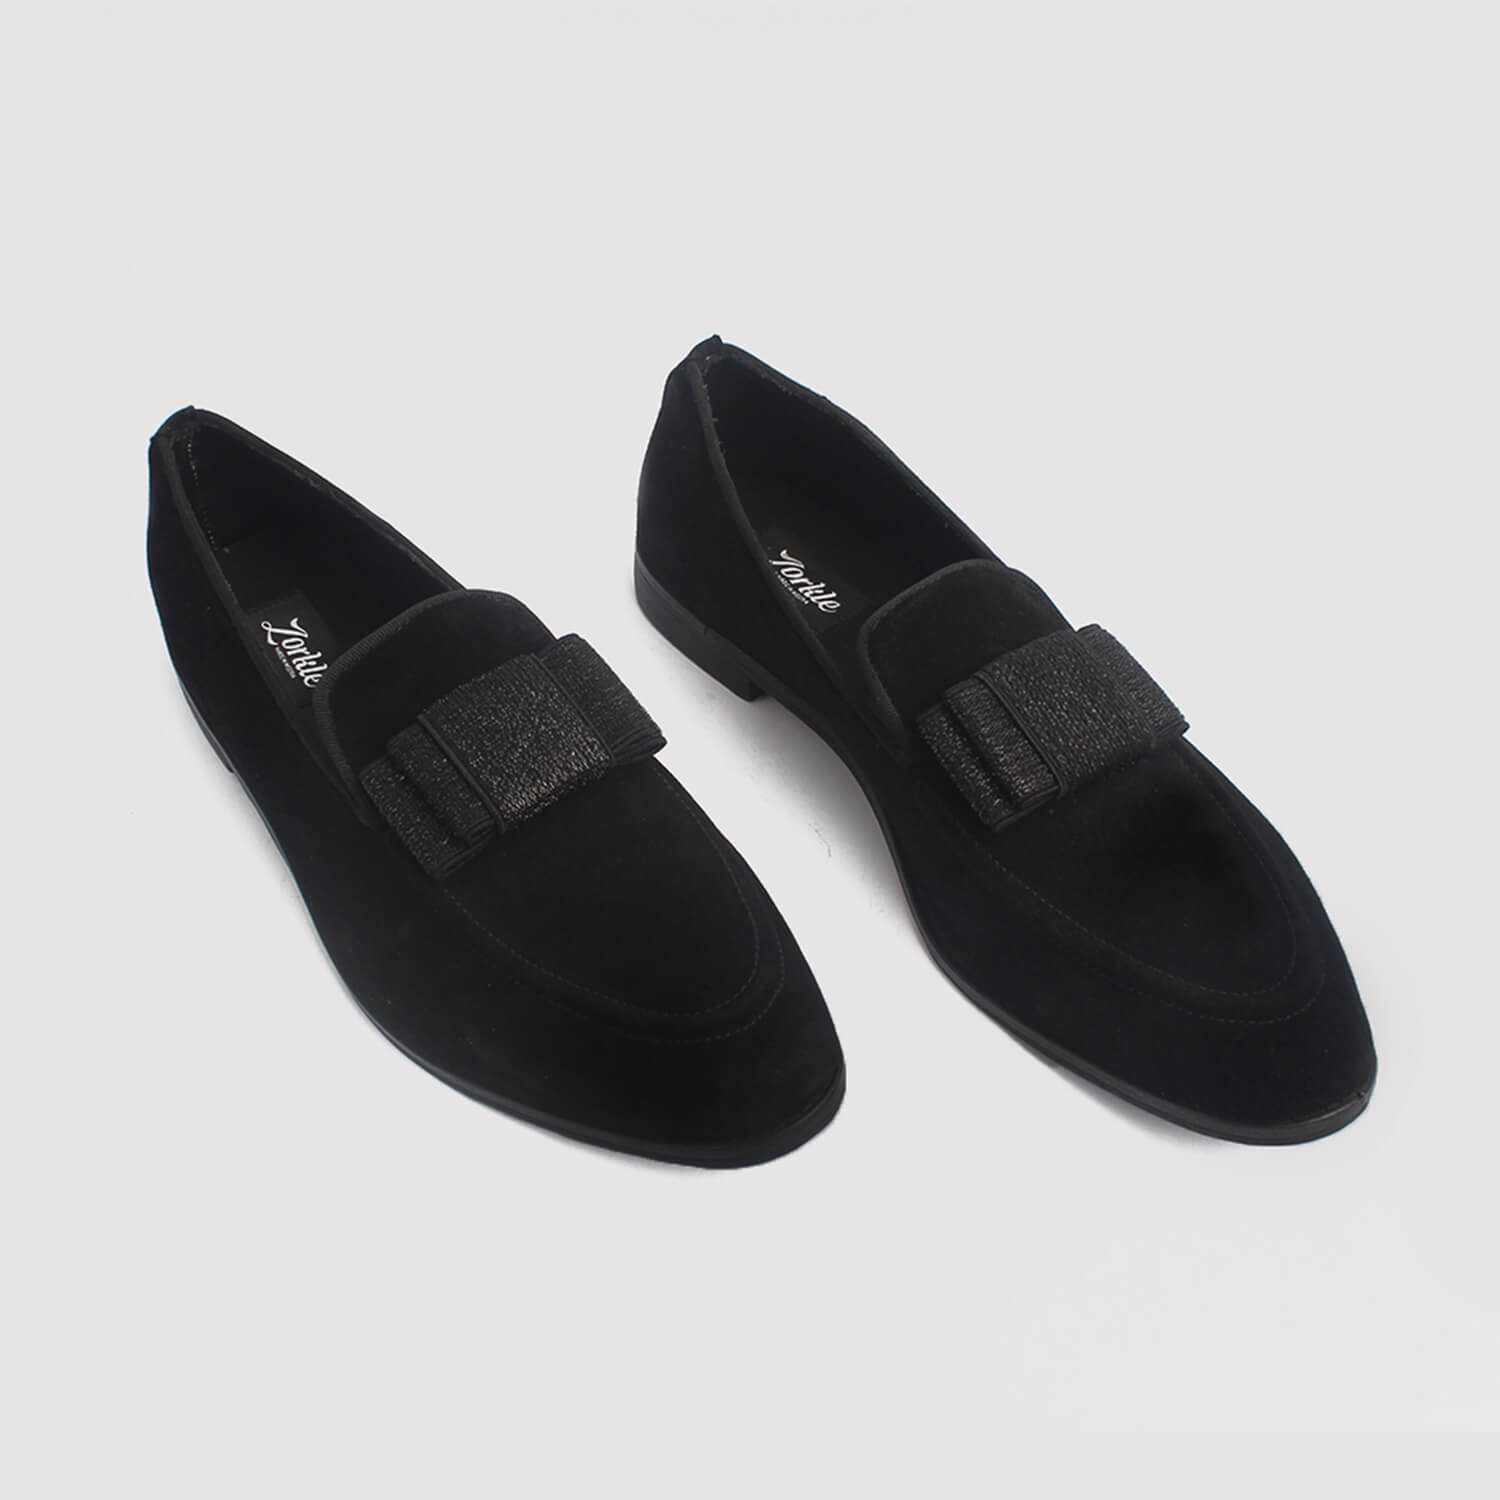 1c7bce8e565b2 trevor bow loafers black suede by zorkle shoes in lagos nigeria